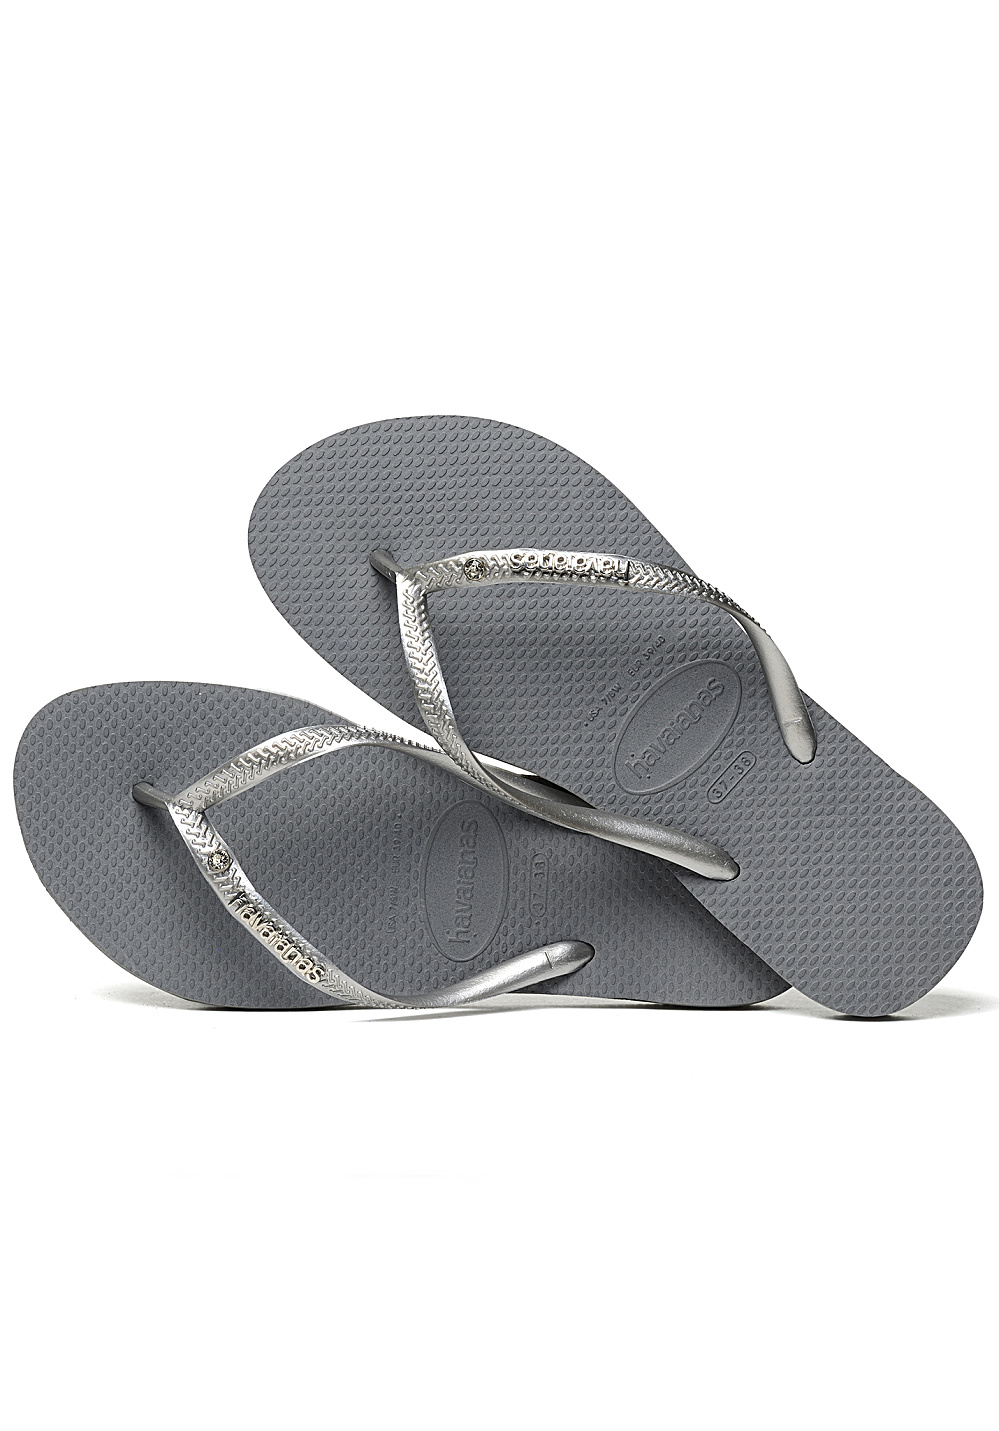 af137606e Next. -20%. HAVAIANAS. Slim Metal Logo and Crystal - Sandals for Women